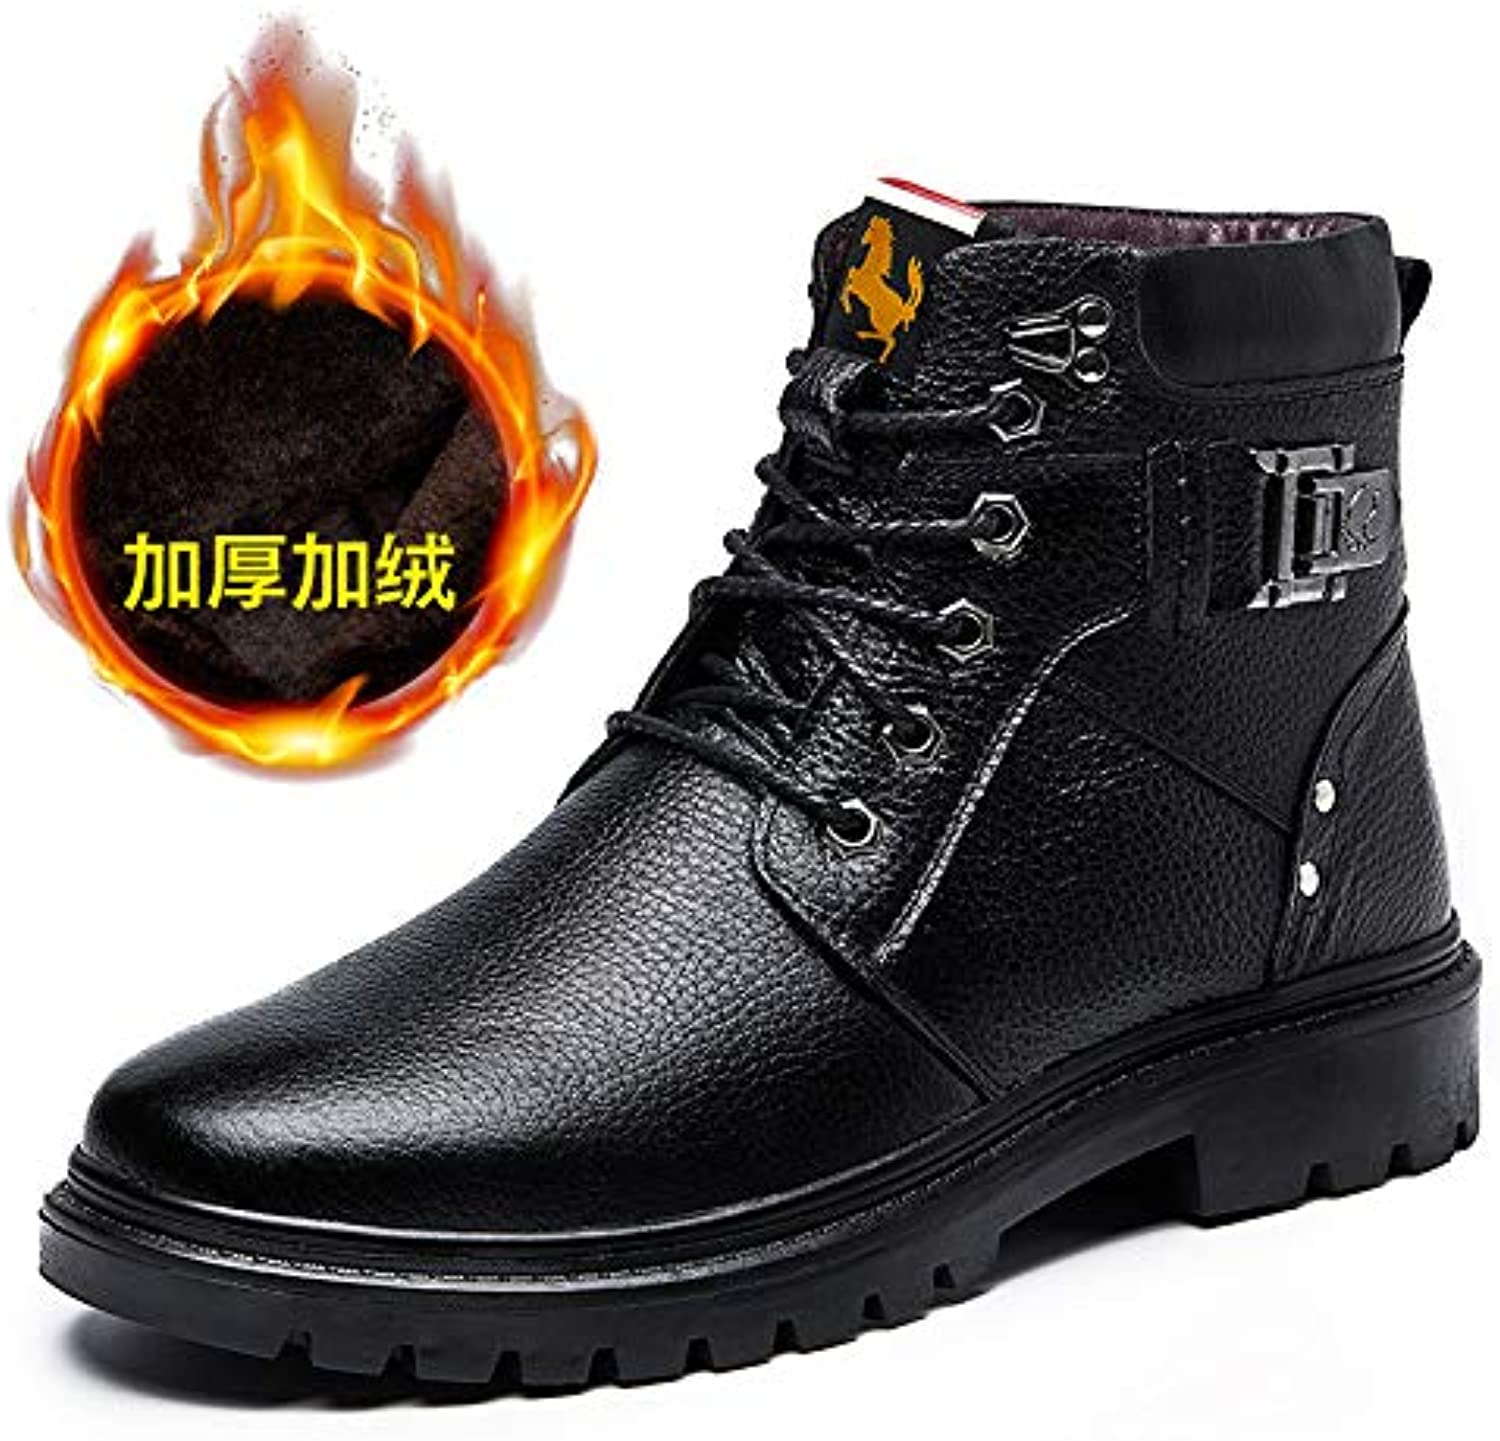 LOVDRAM Boots Men's Warm Cotton Boots Winter New Men'S Casual Martin Boots Thick Thick Snow Boots Fashion Boots